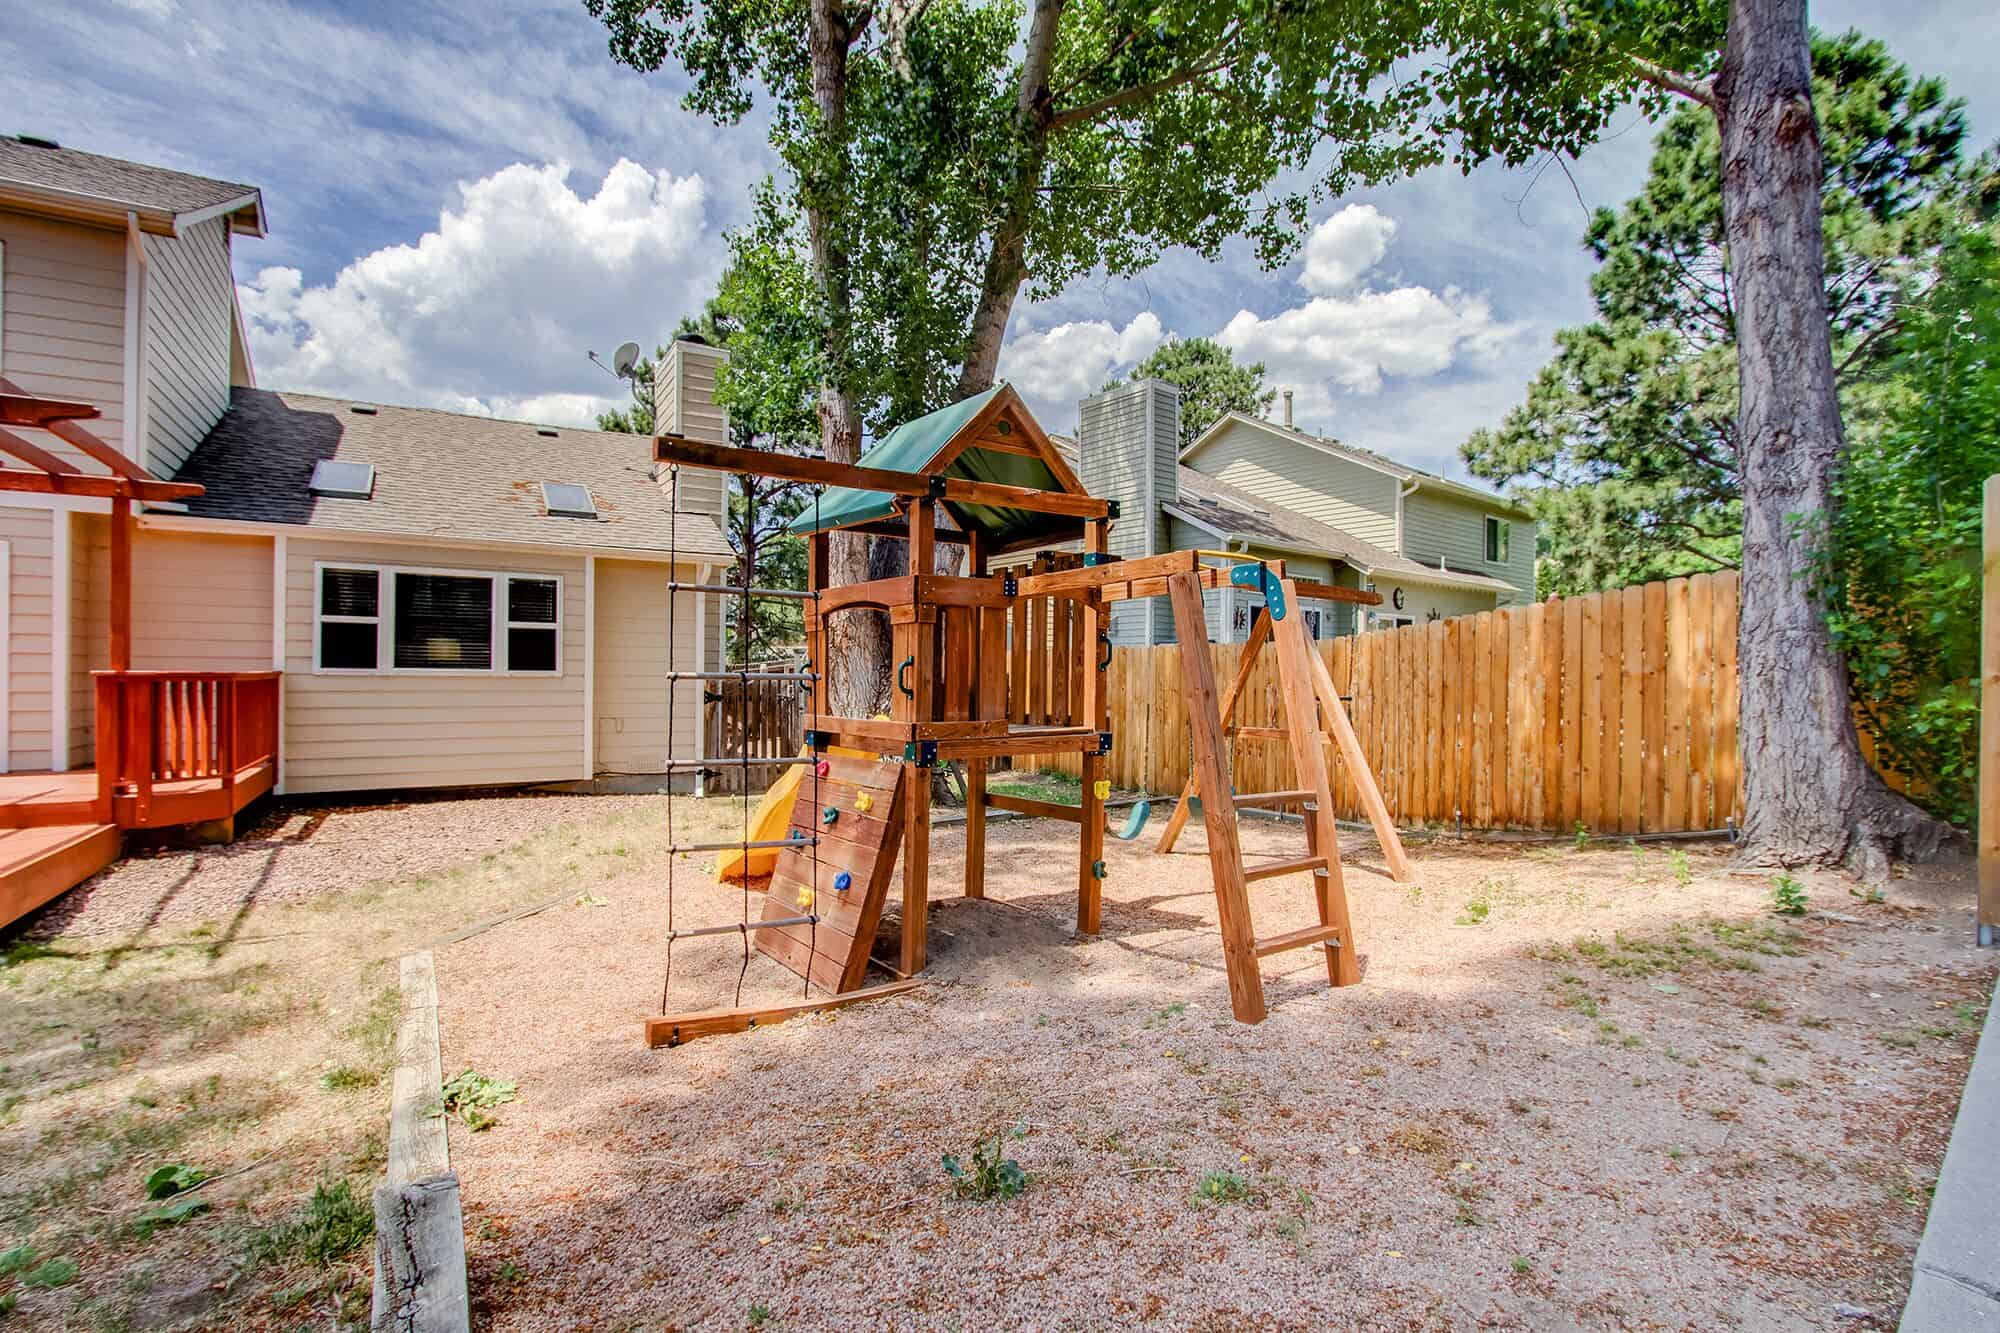 Playset and Dog Run on Side Yard with Storage Shed